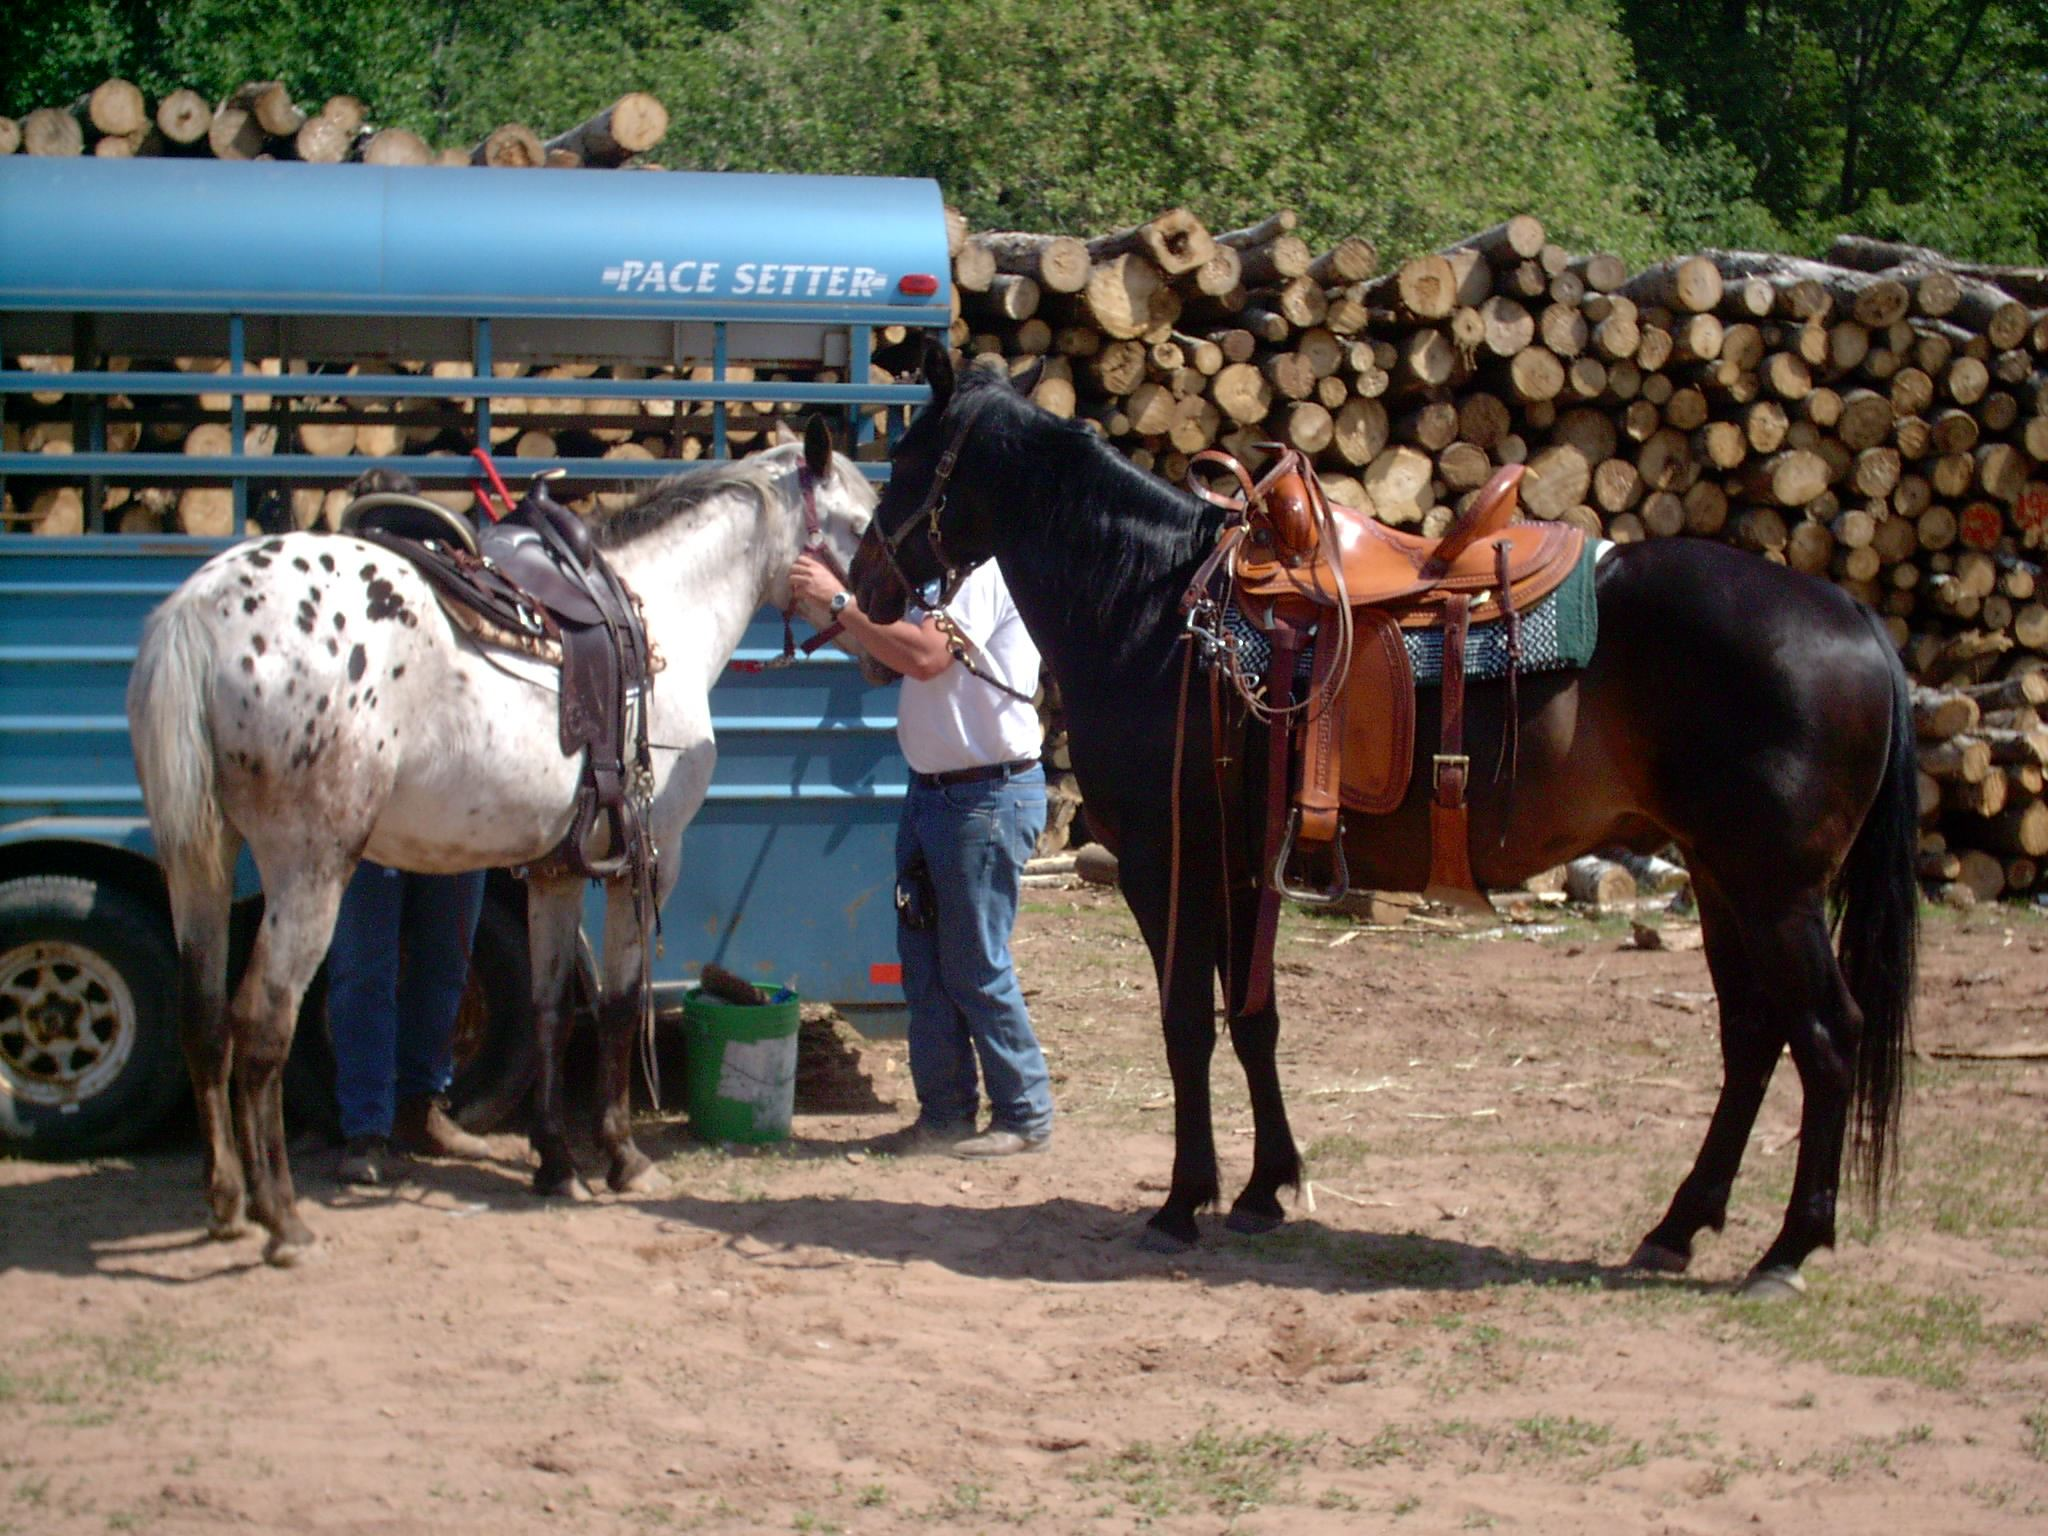 Two men with horses beside horse trailer